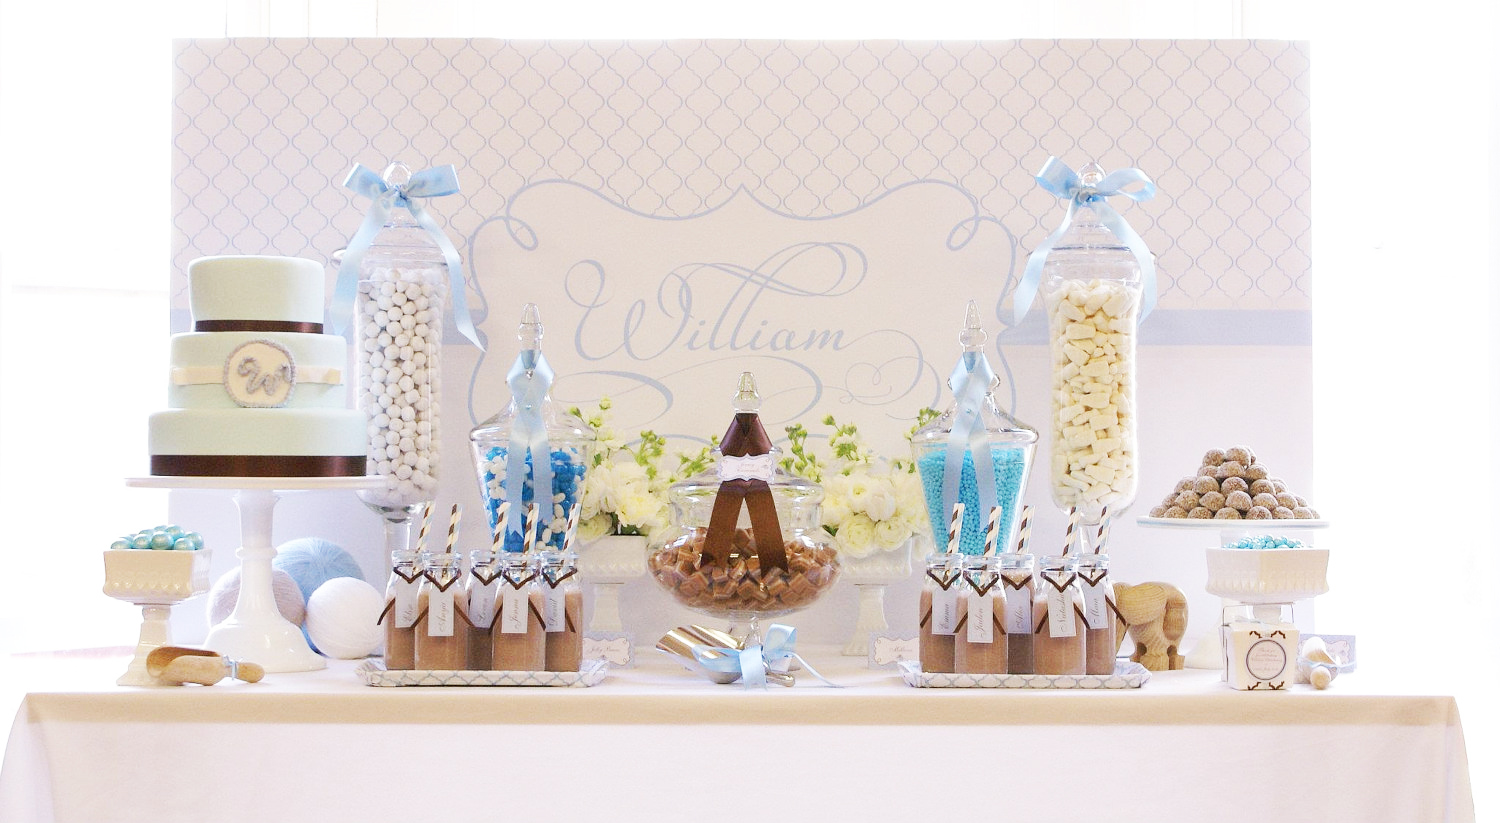 Baby boy dedication party on pinterest baby dedication christening and baby boy baptism - Decorations for a baptism ...